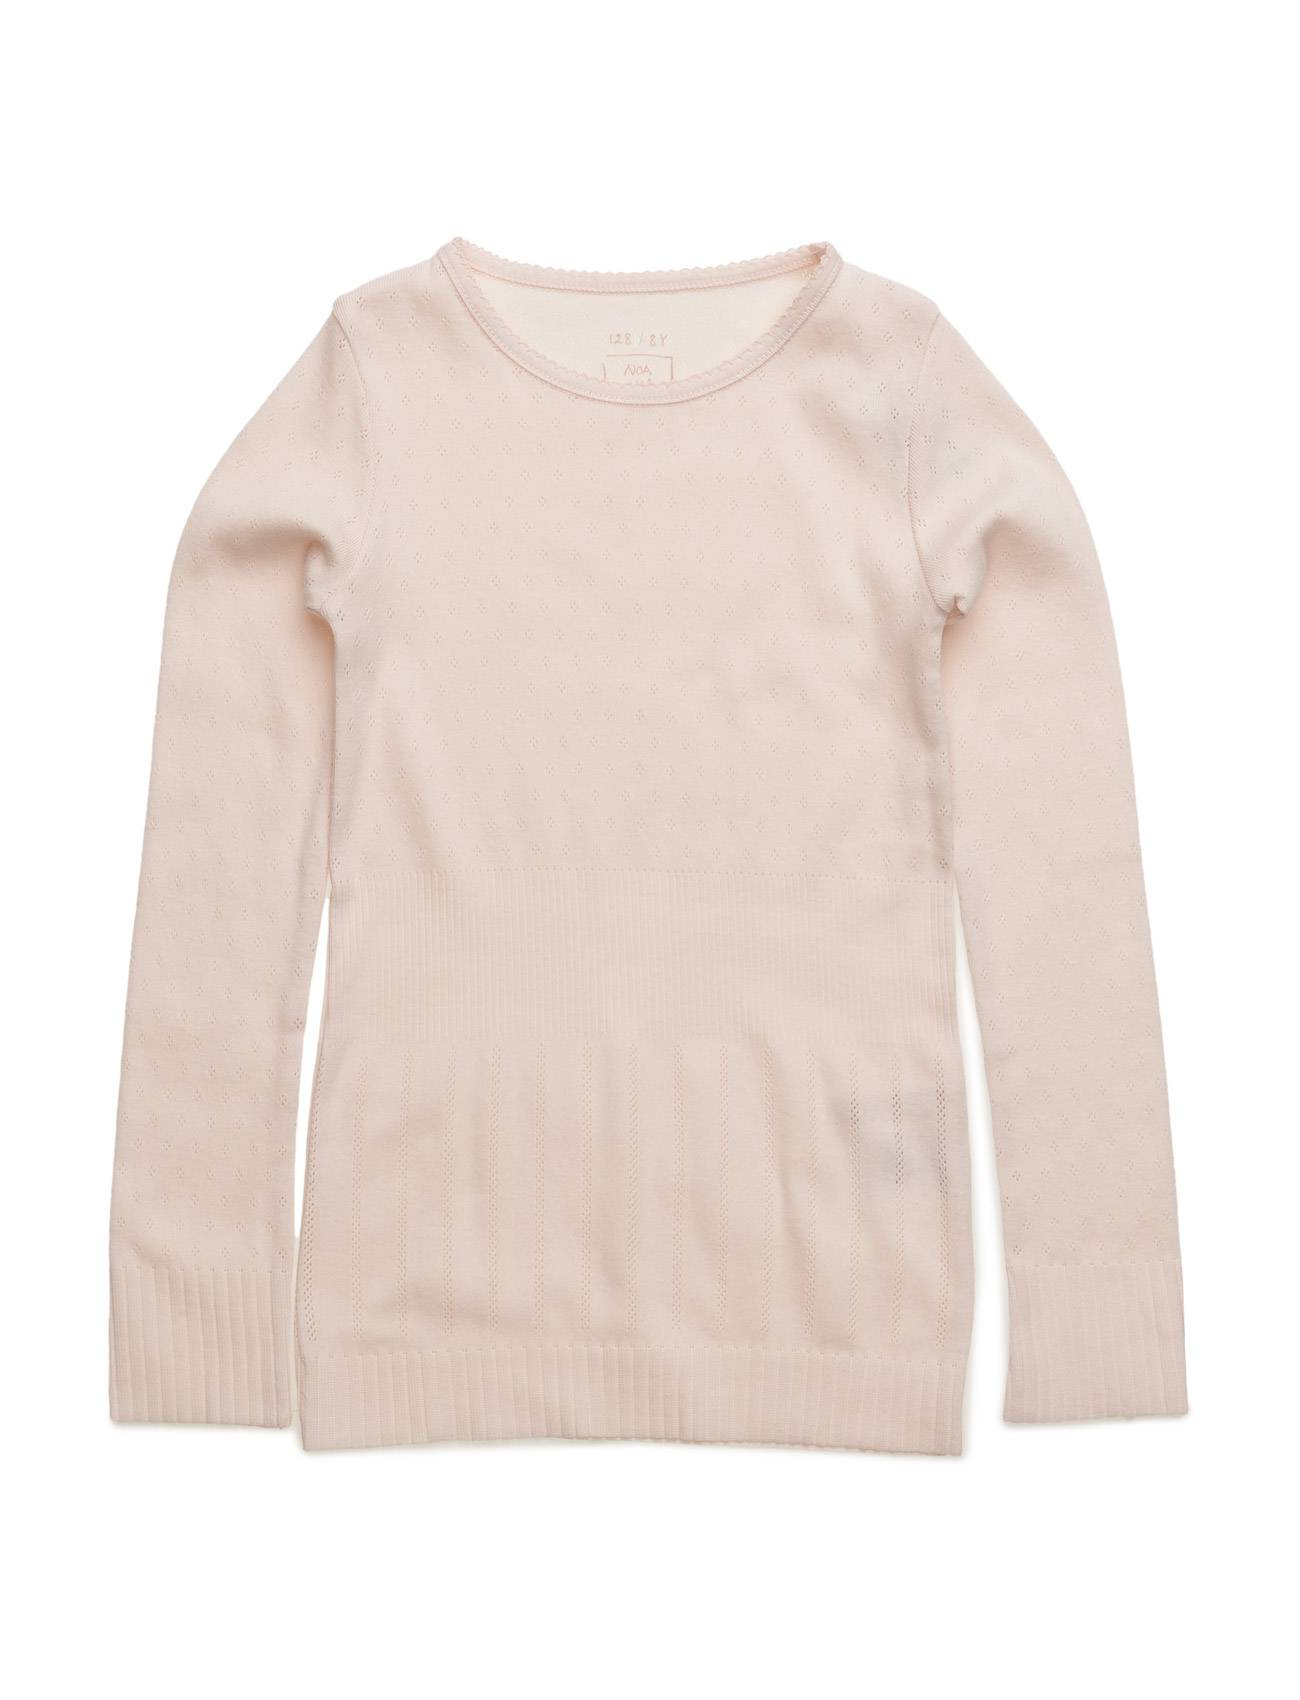 Noa Noa Miniature T-Shirt